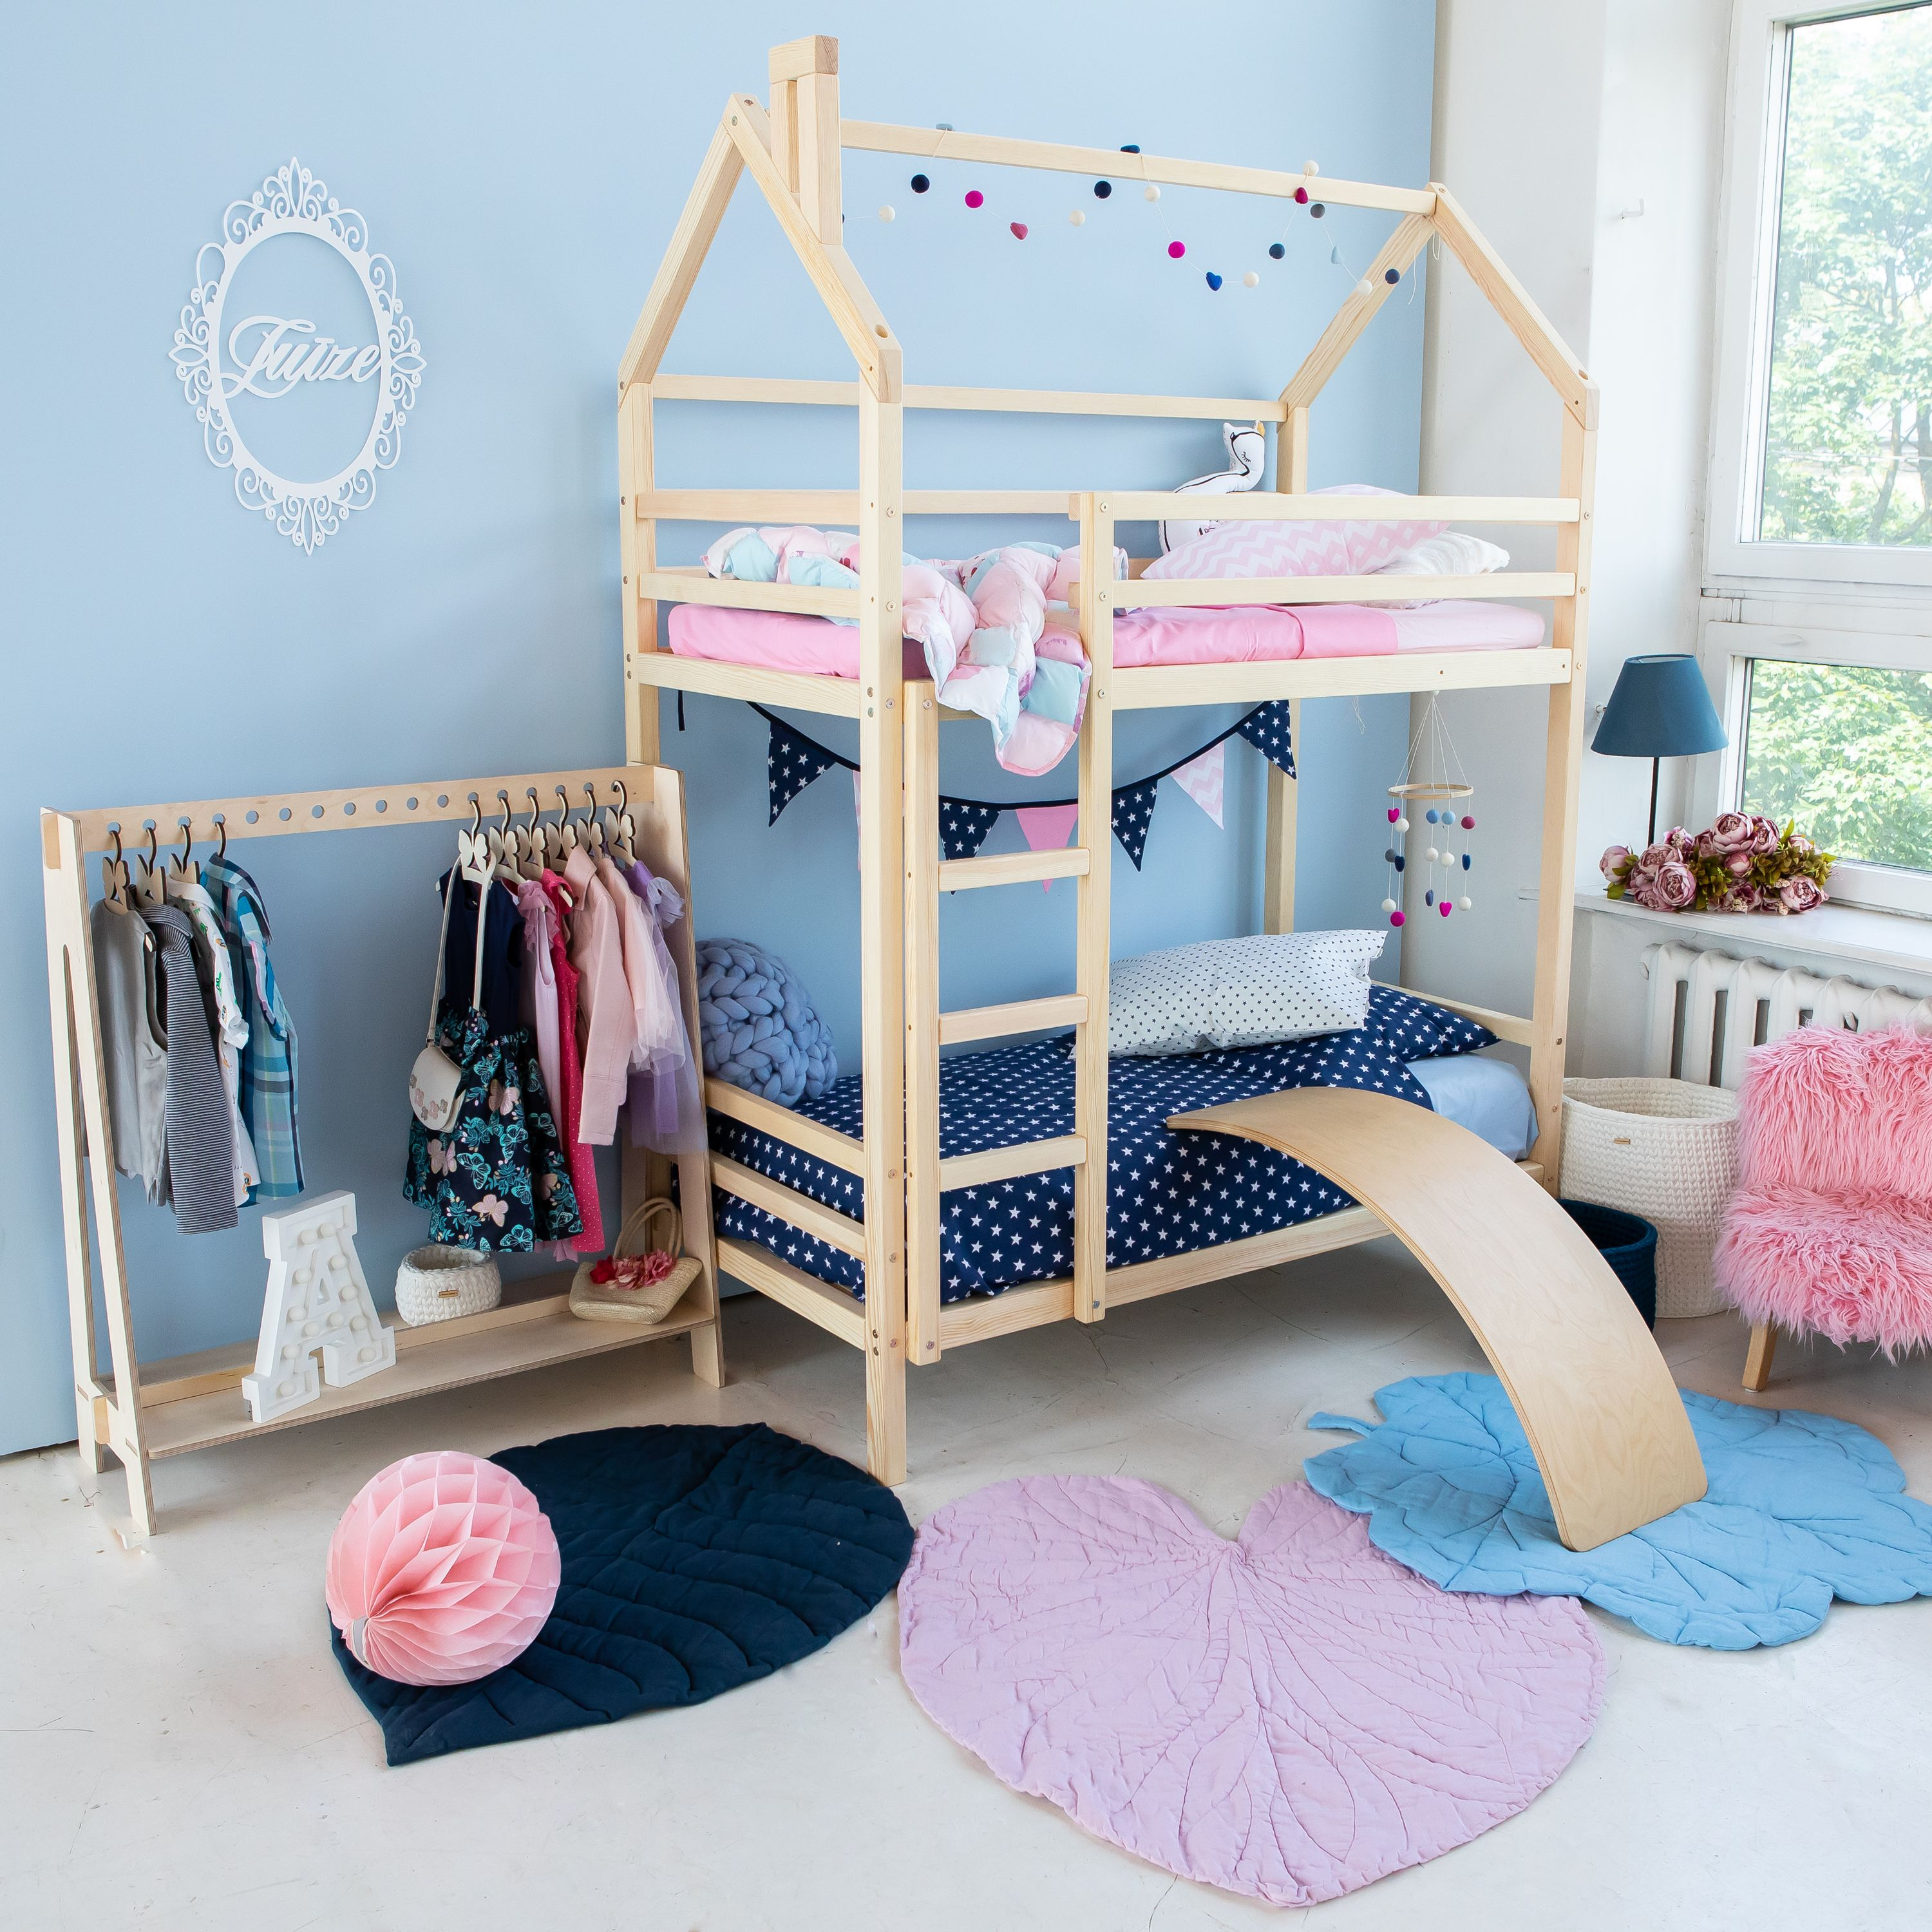 Bunk Bed Children Bed Toddler Bed Twin Bed Frame House Bed